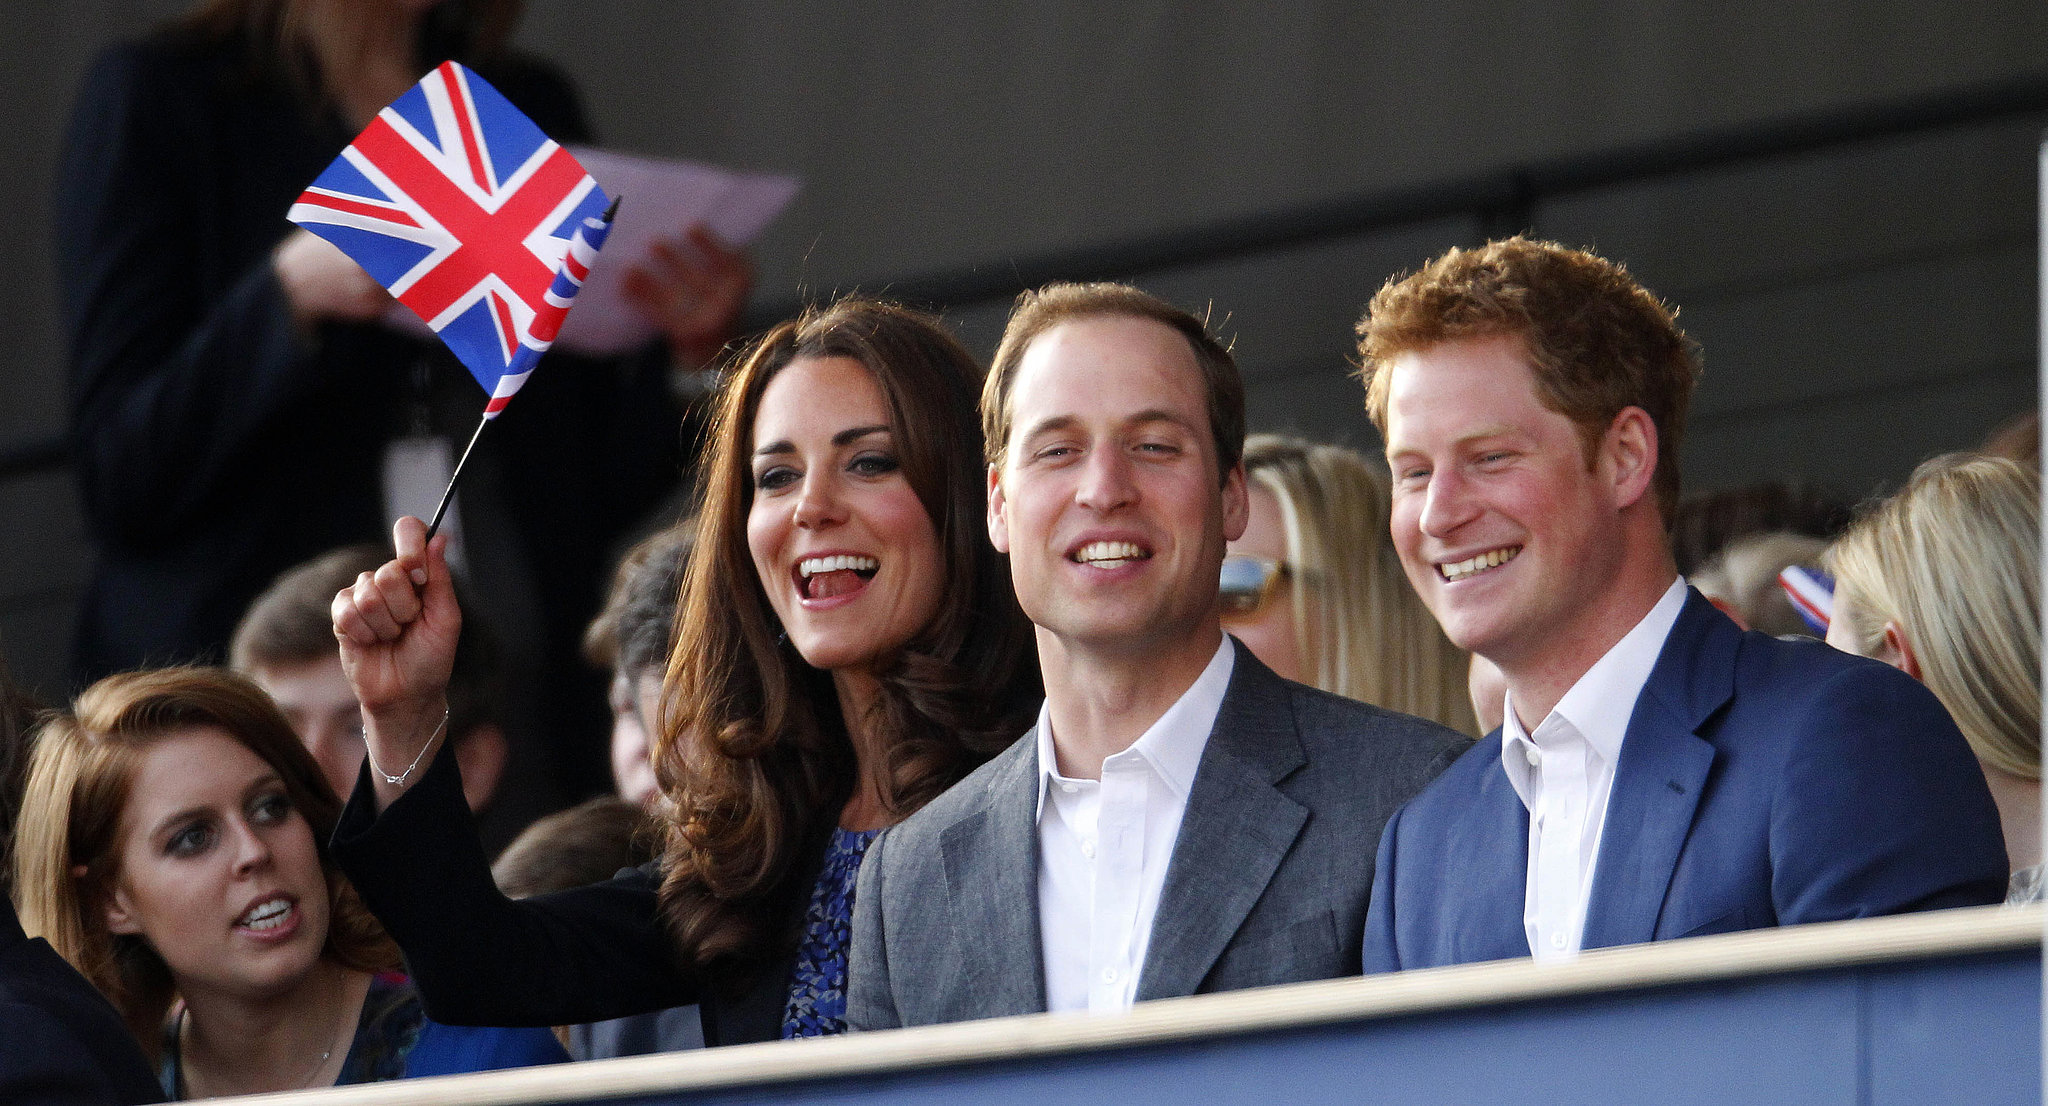 Kate Middleton and Prince William cheered during the Diamond Jubilee Concert in London with Prince Harry and Princess Beatrice in June 2012.